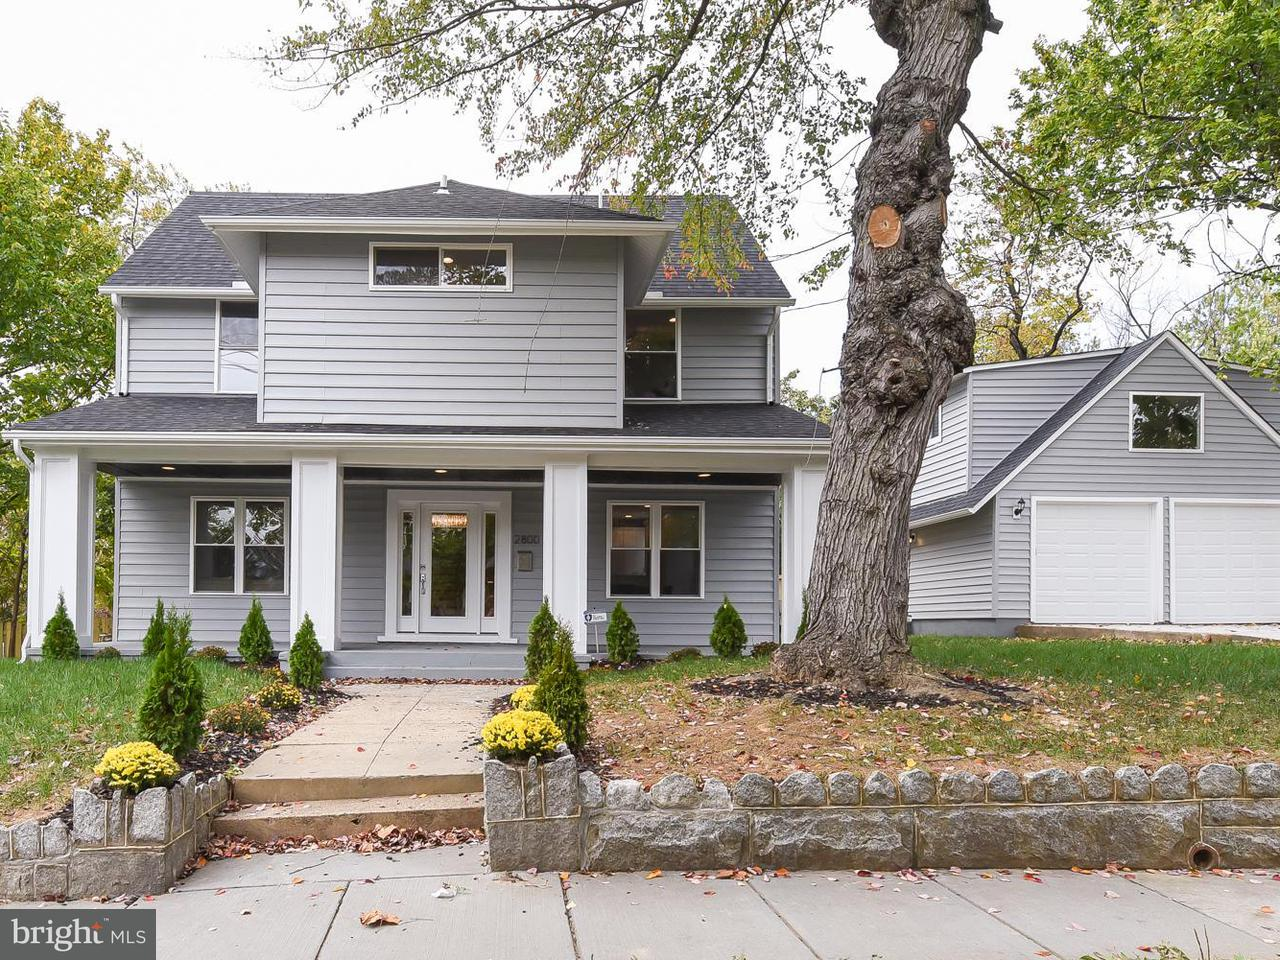 Single Family Home for Sale at 2800 13th St Ne 2800 13th St Ne Washington, District Of Columbia 20017 United States